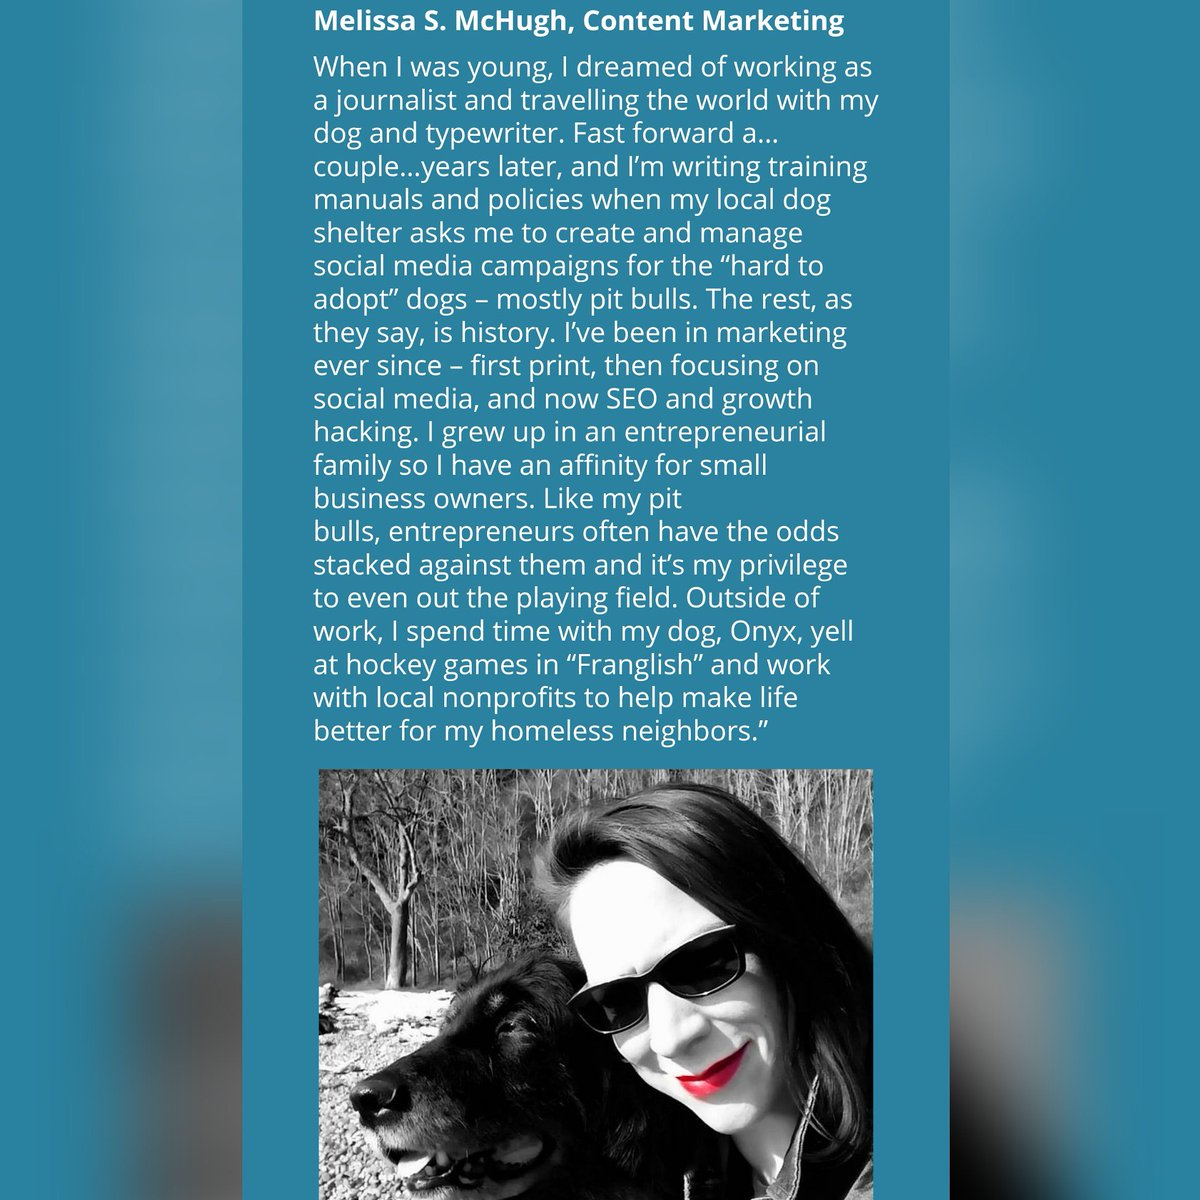 The best part of today is sneaking my #dog into my bio @RightThinkInc? 😍😂 #ineedtogetoutmore #branding #rightthink #digitalnomad